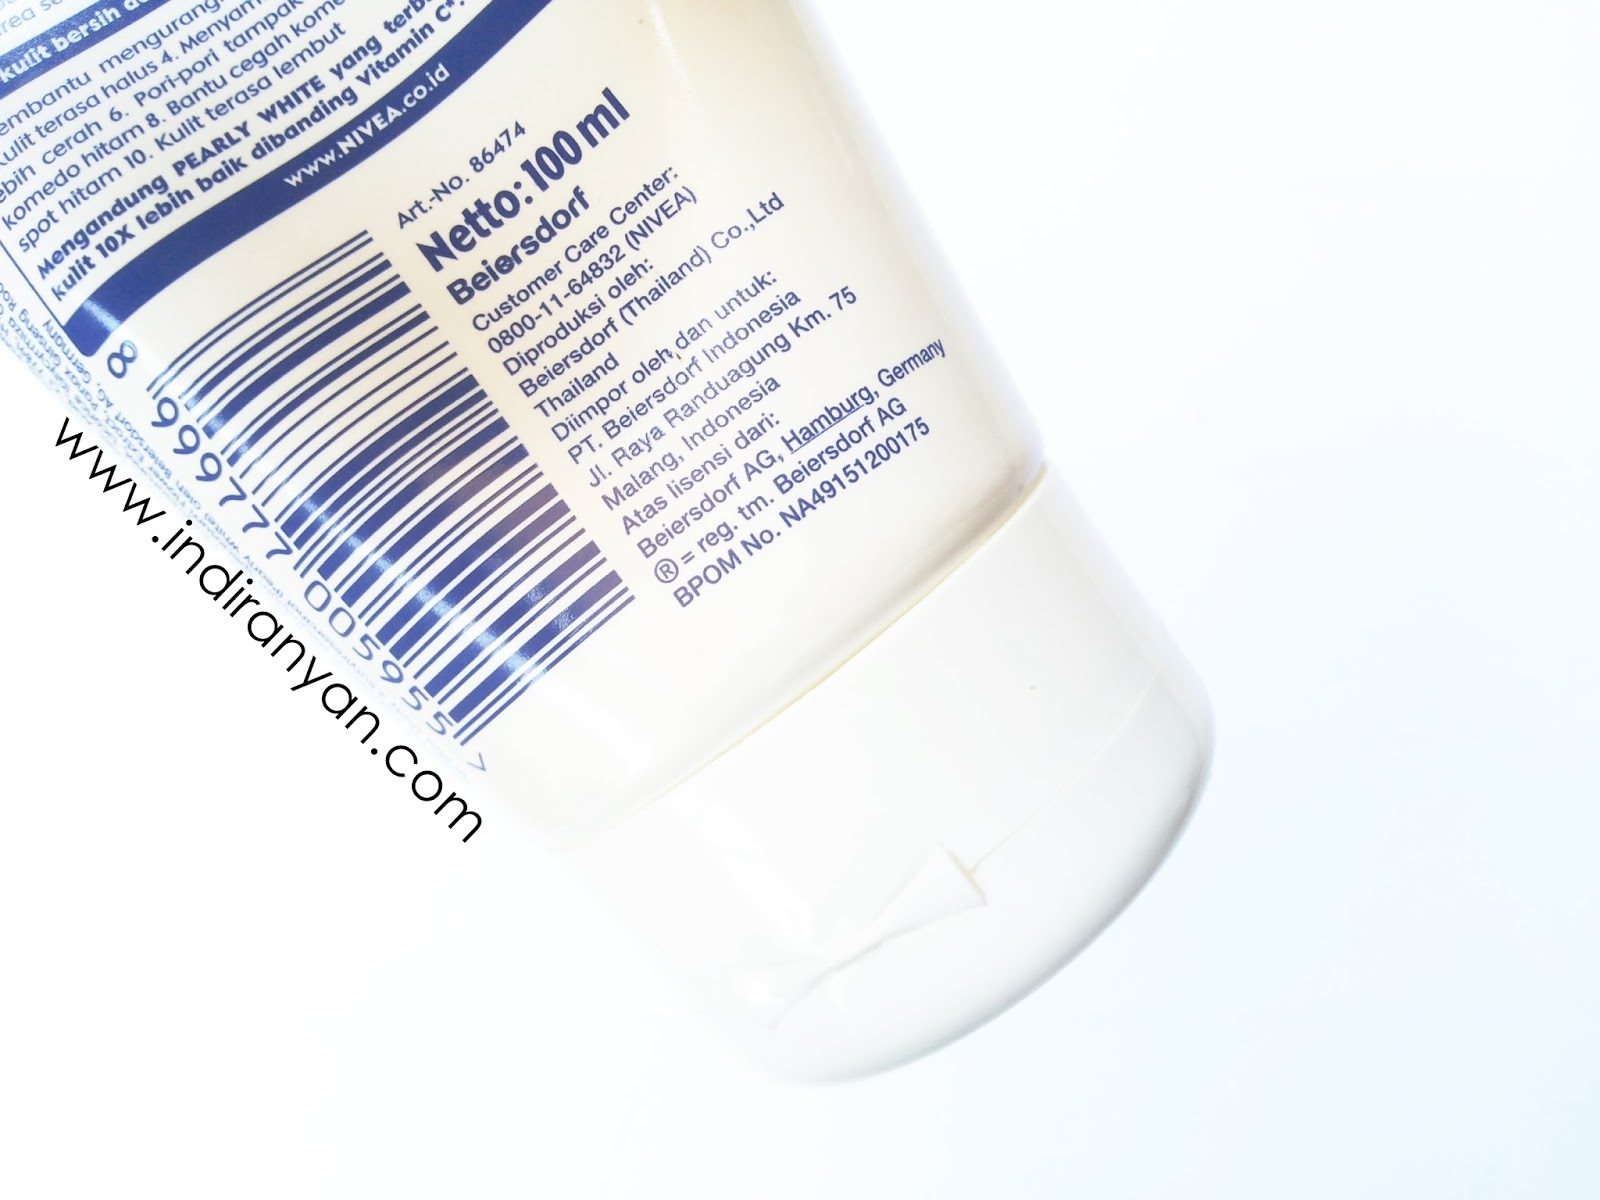 Review Nivea Make Up Clear White Oil Control 2 In 1 Foam Center 100ml The Ingredients List Side Of Tube And I Forget To Take Picture So Im Write It Below